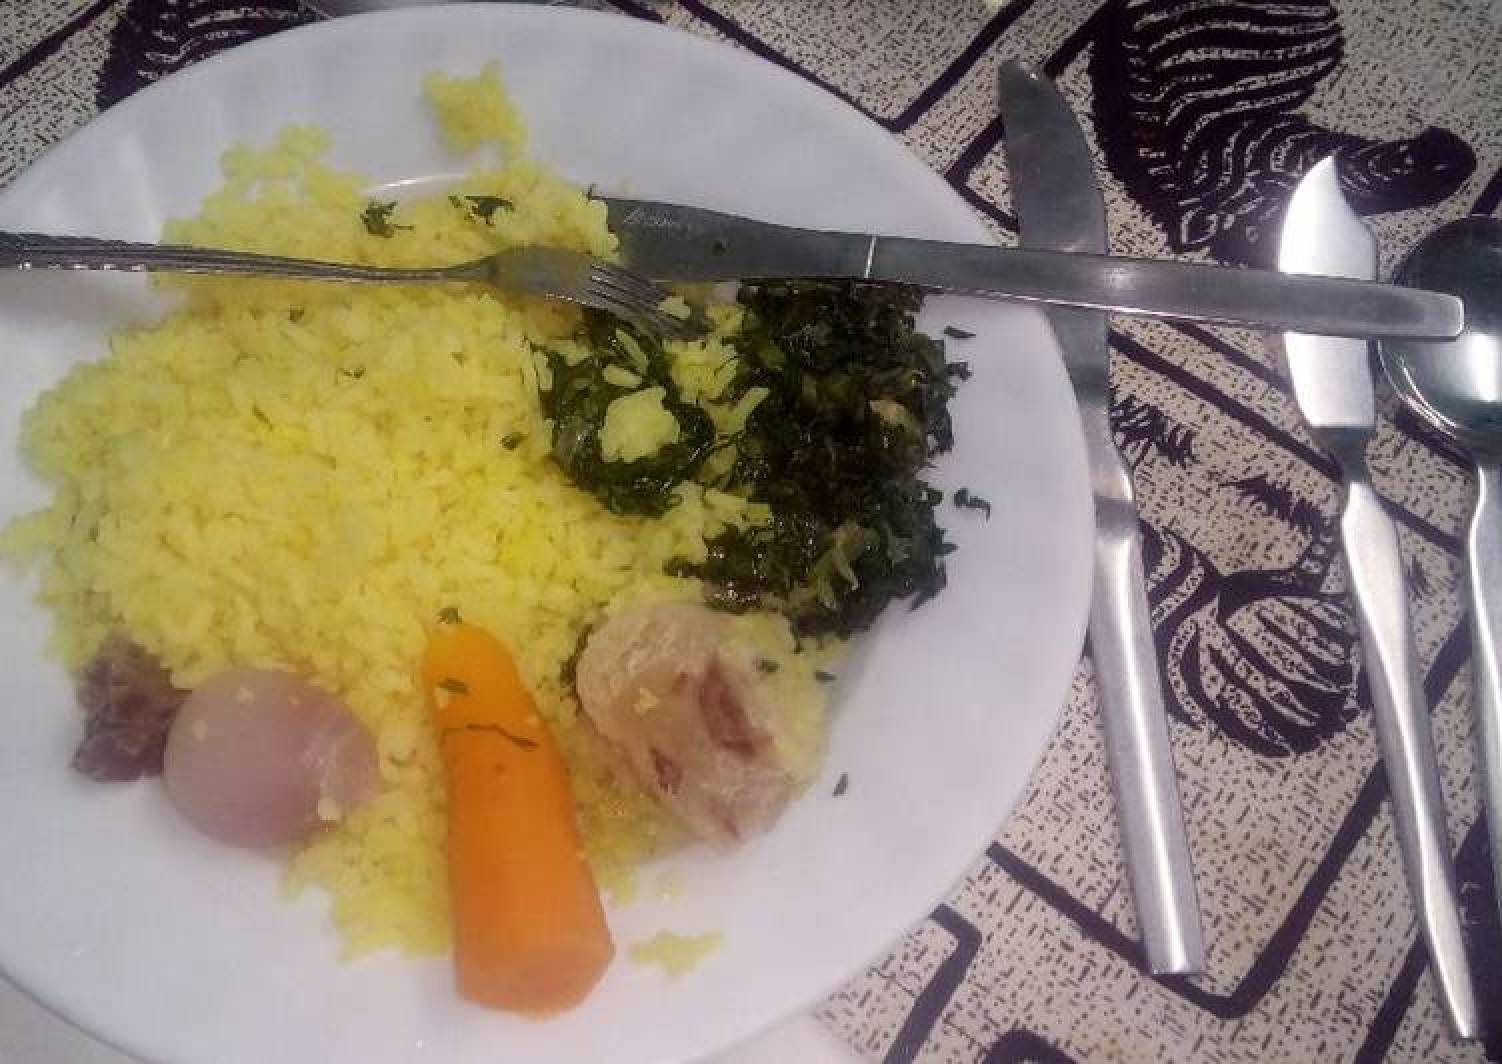 Tumeric rice with fried vegetables